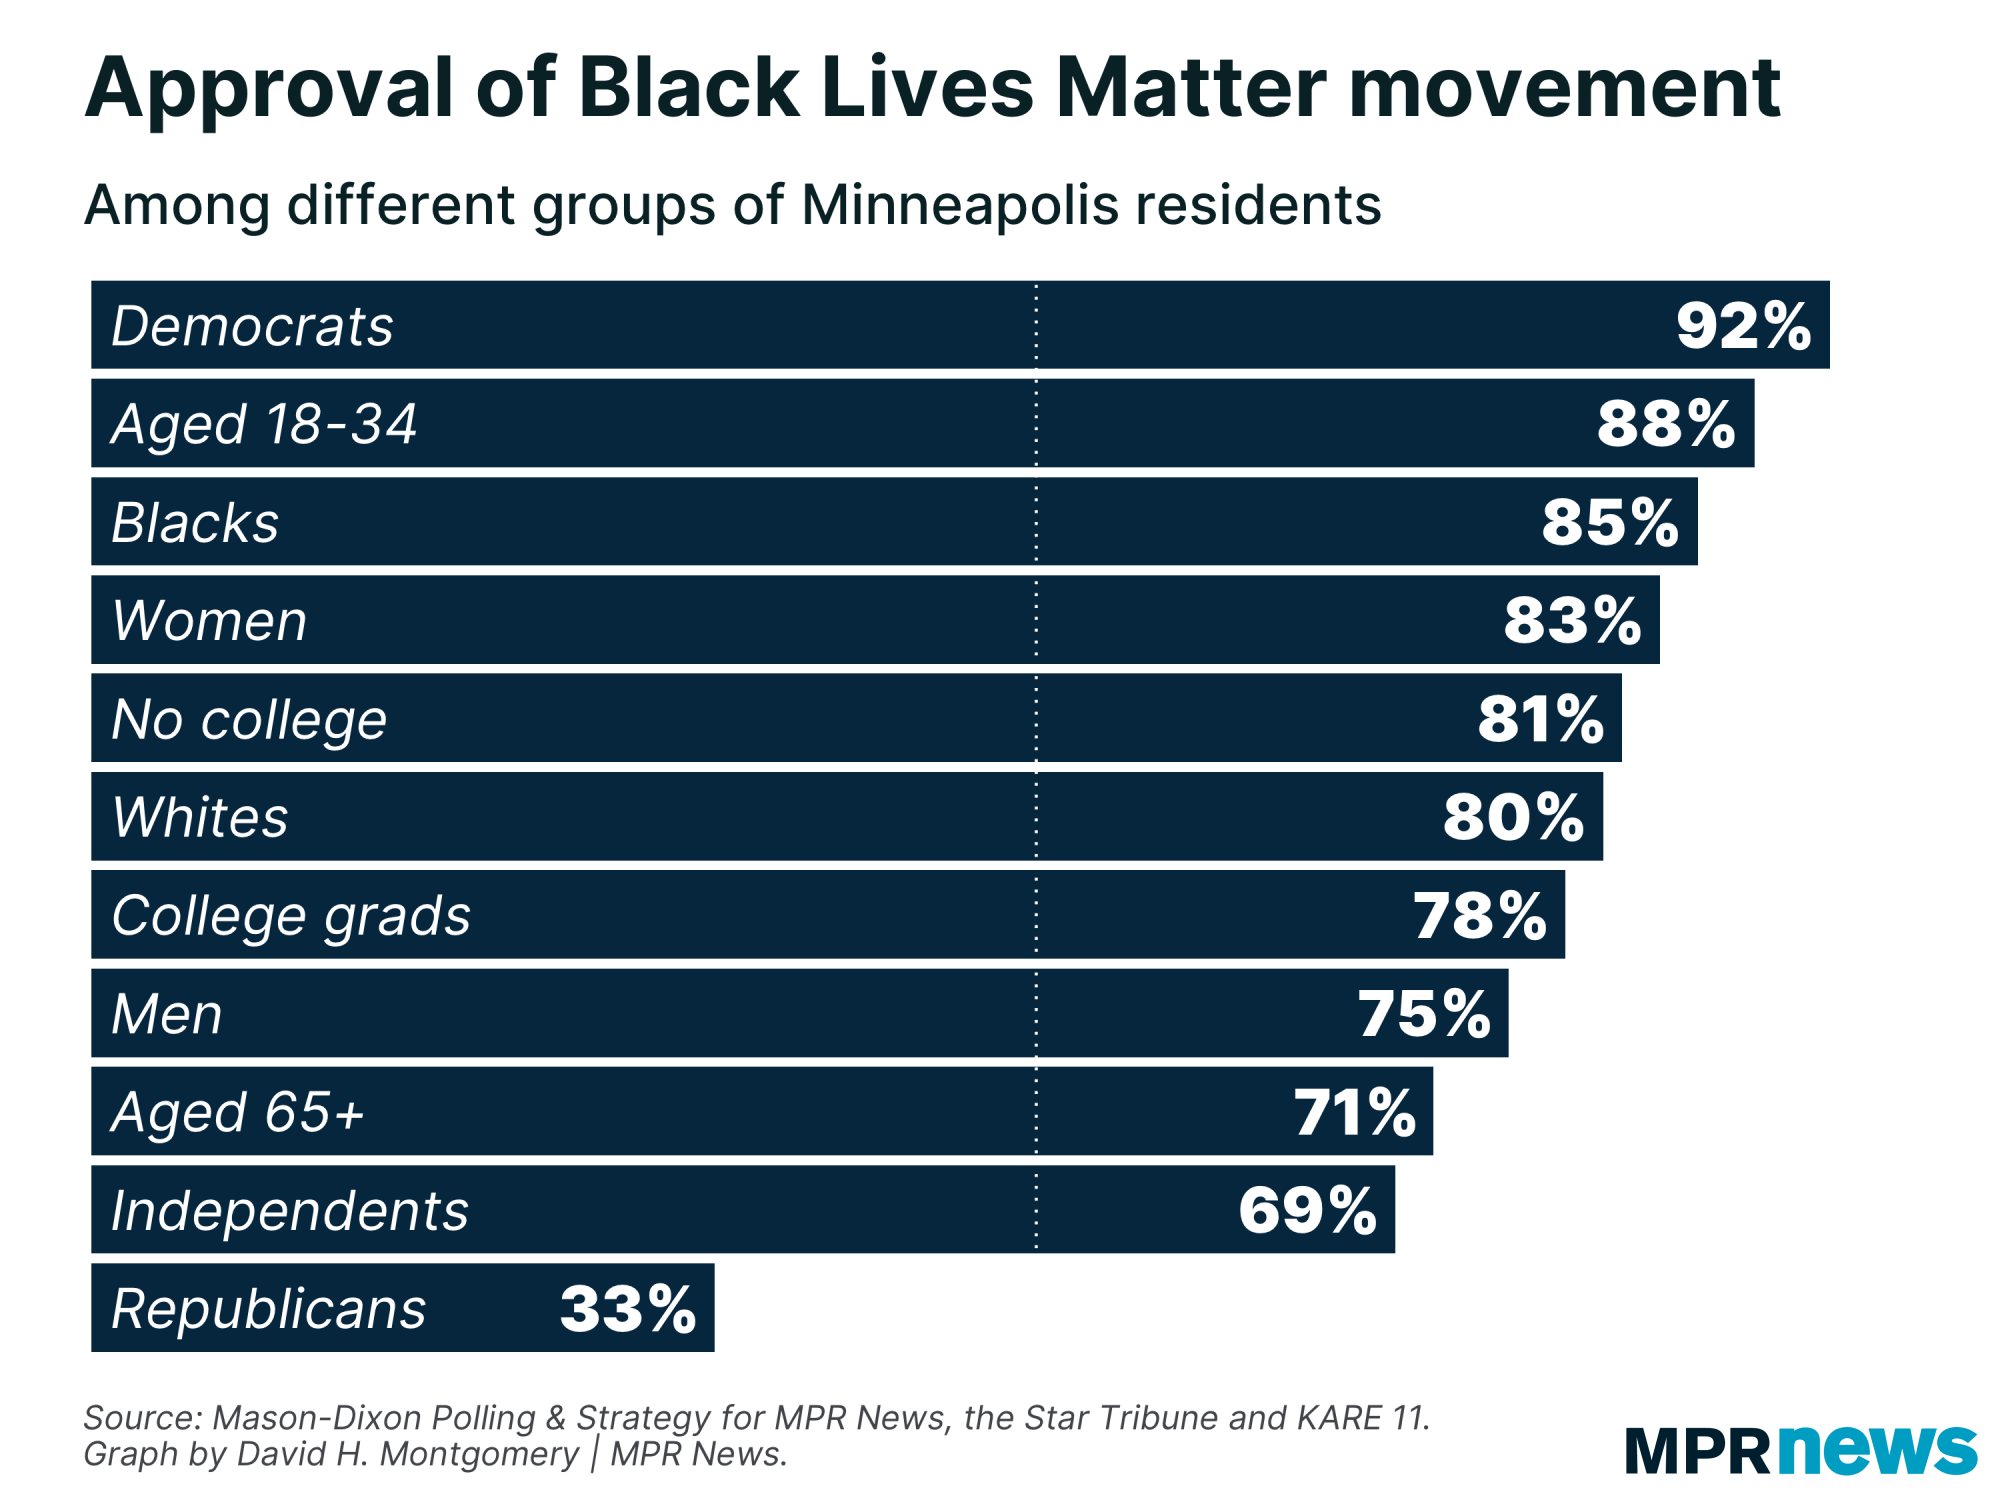 Approval of Black Lives Matter by different Minneapolis groups